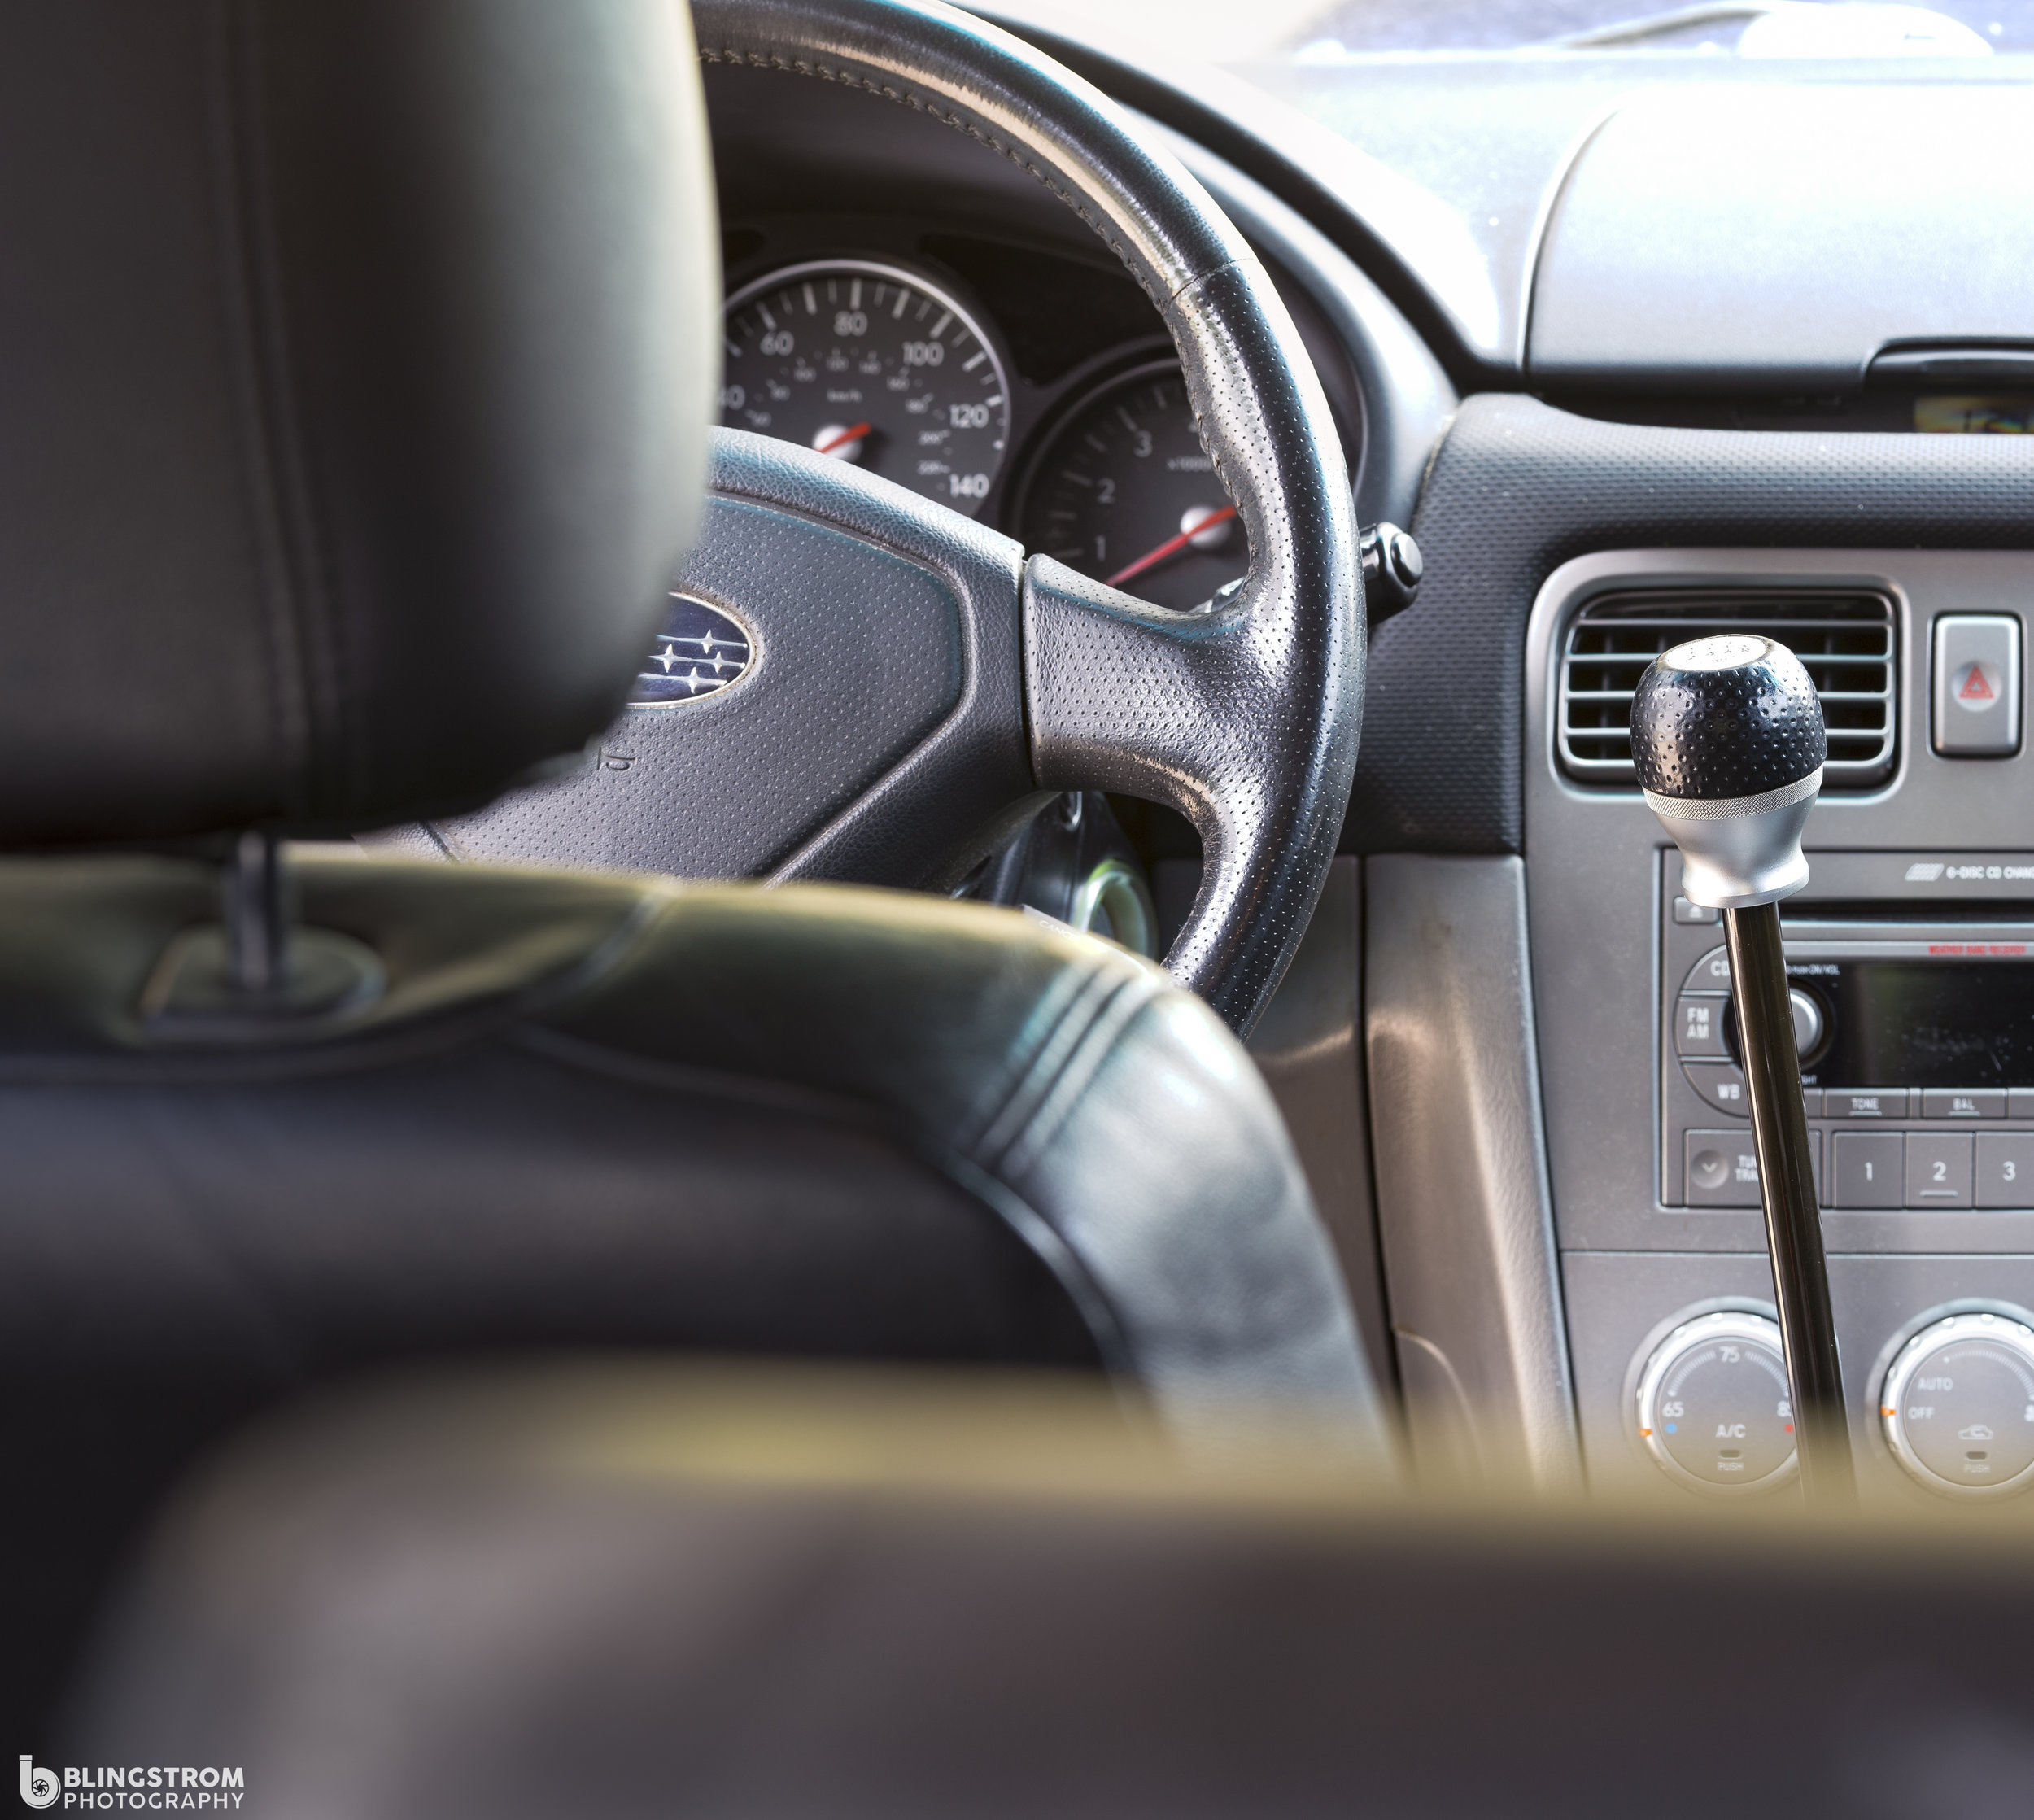 fxt shifter and wheel-2.jpg